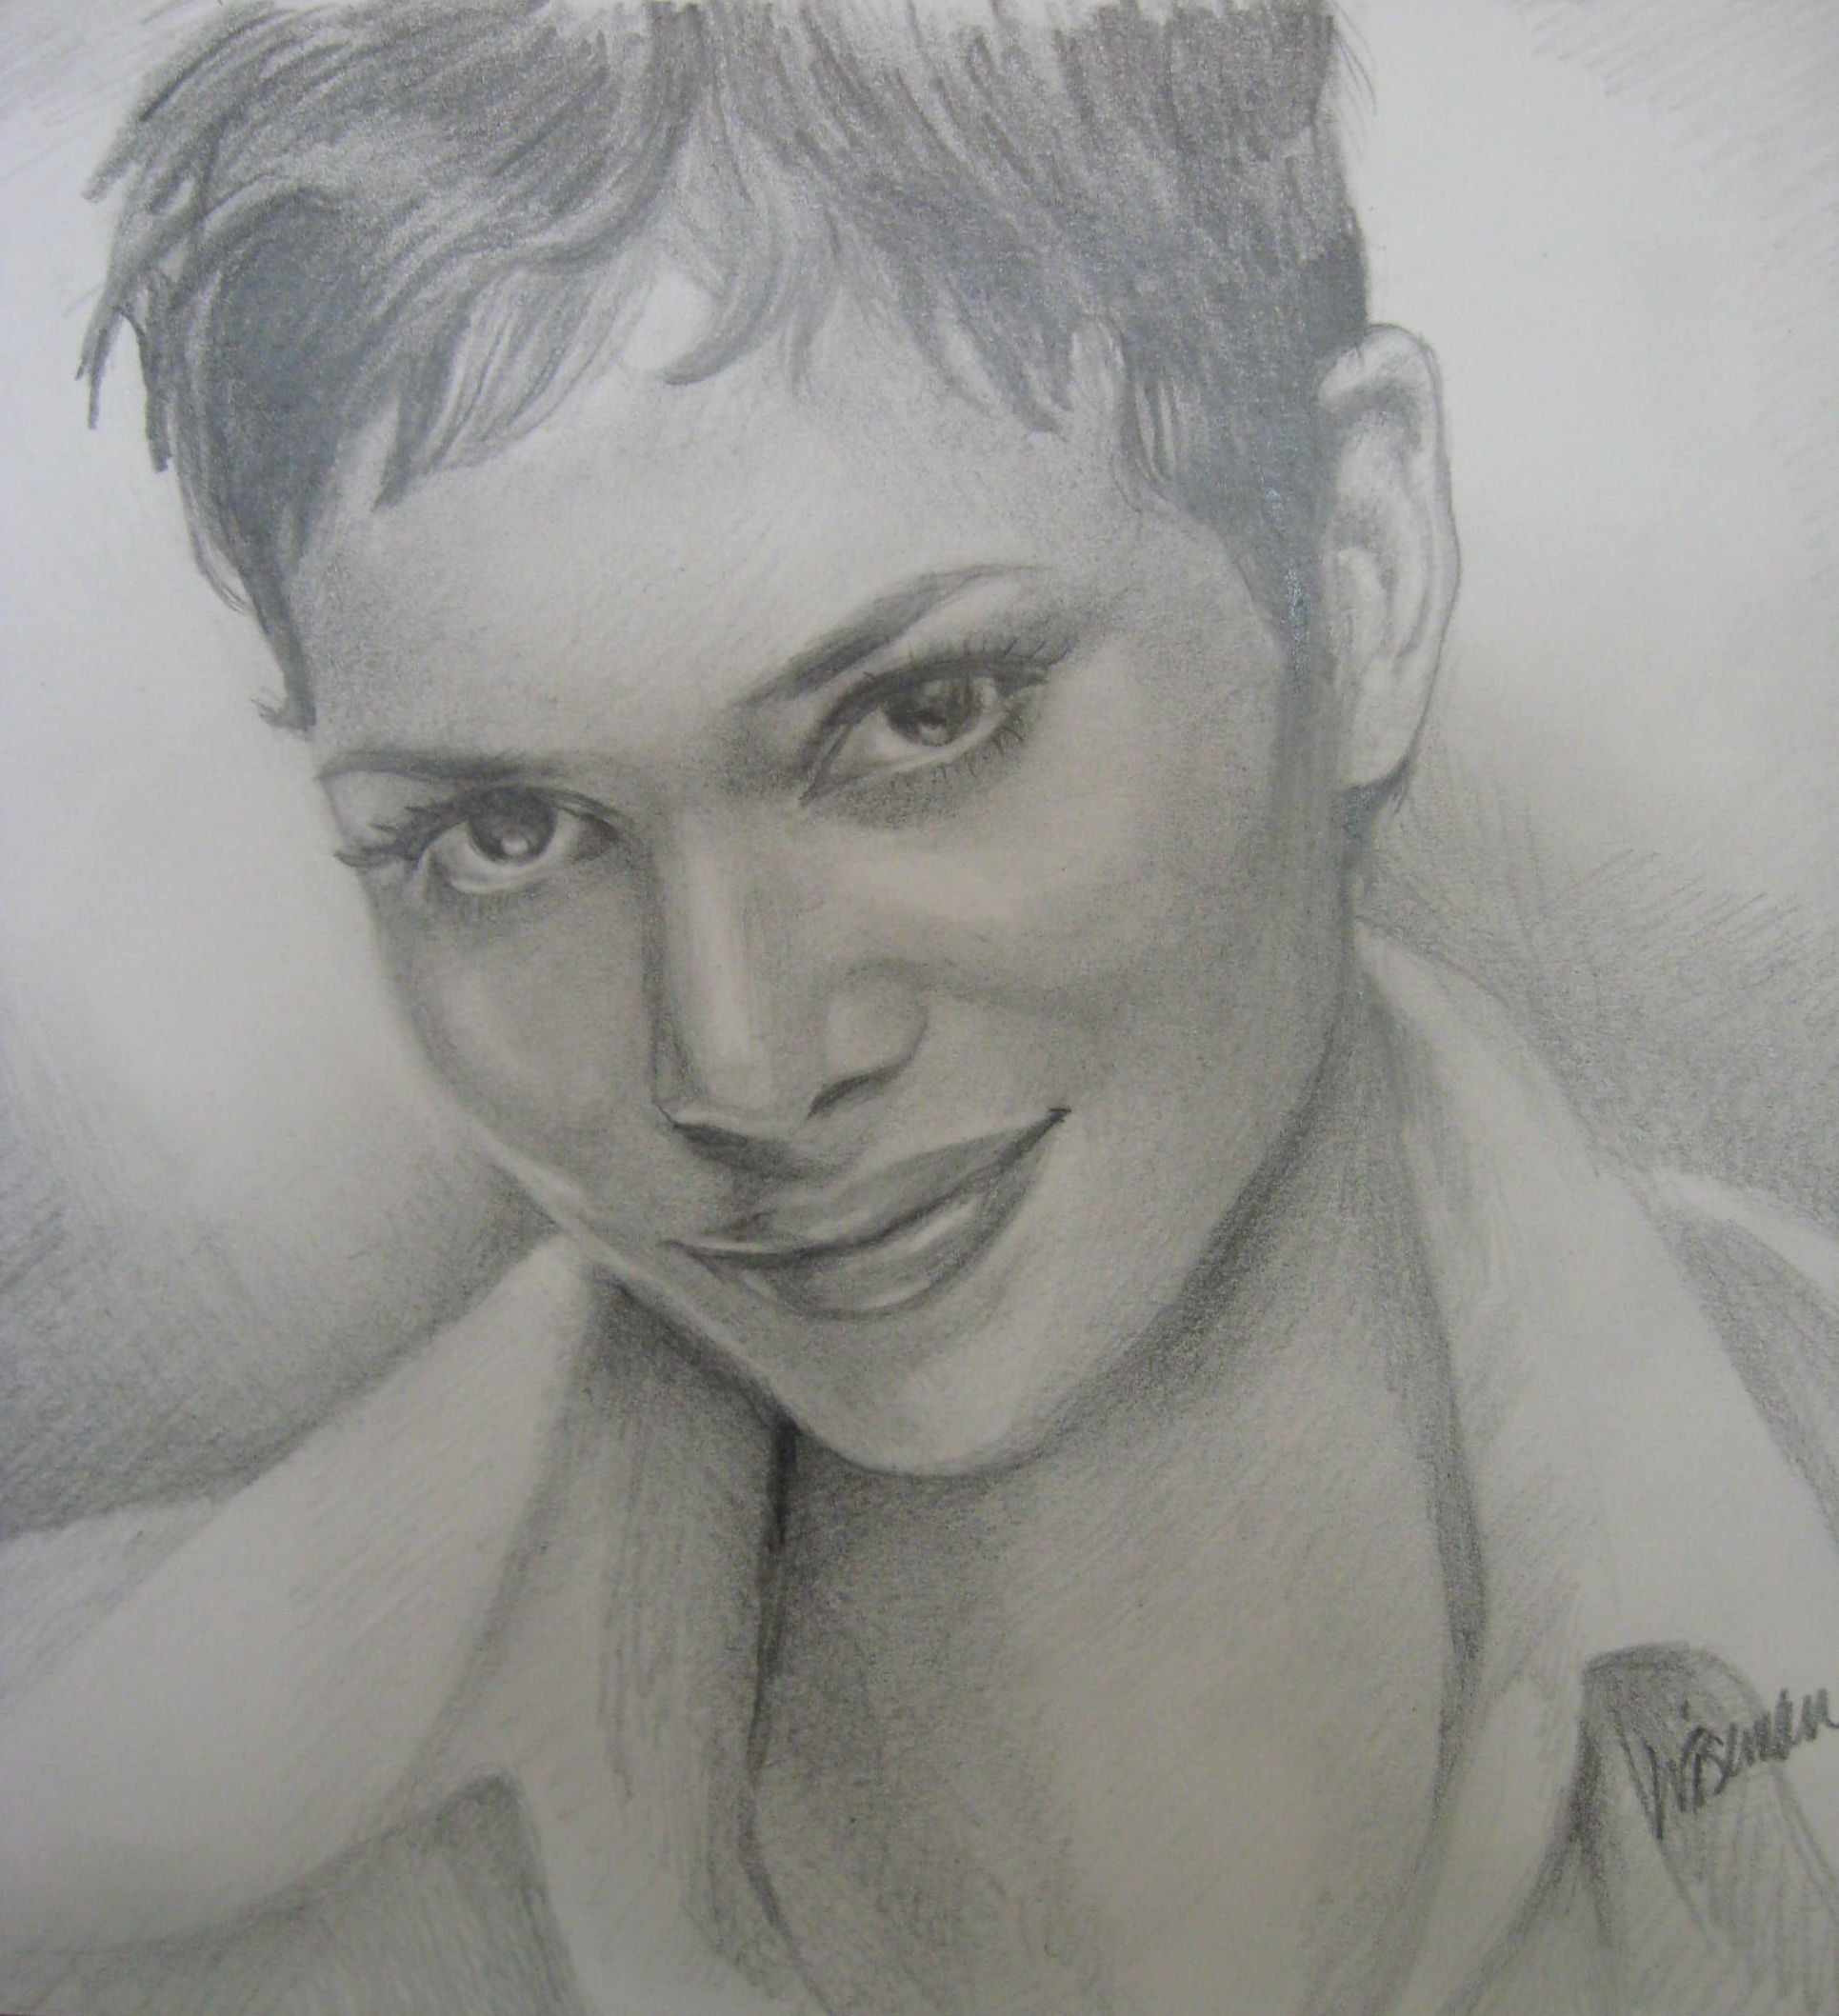 Halle Berry pencil sketch  by Deanna Wiseman